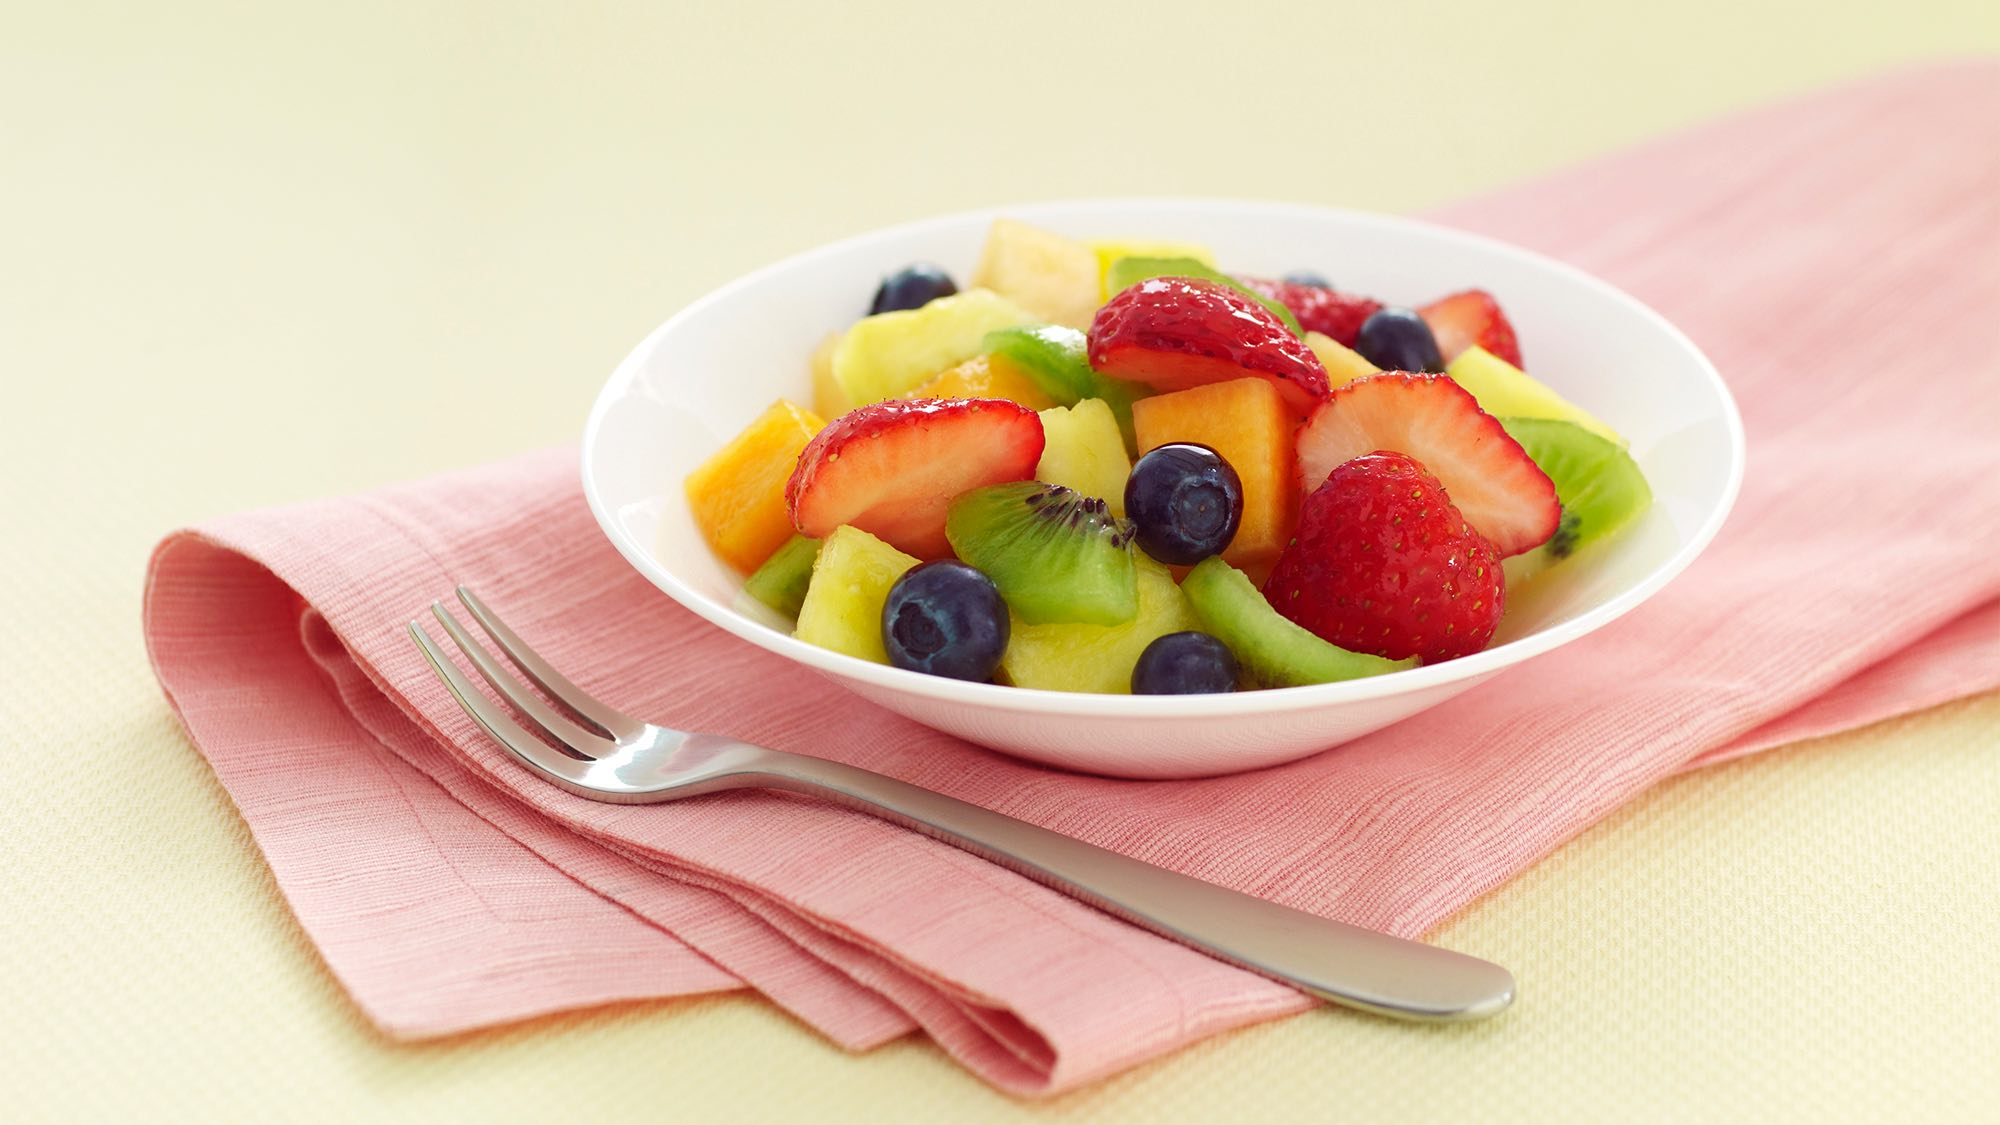 McCormick Very Vanilla Fruit Salad